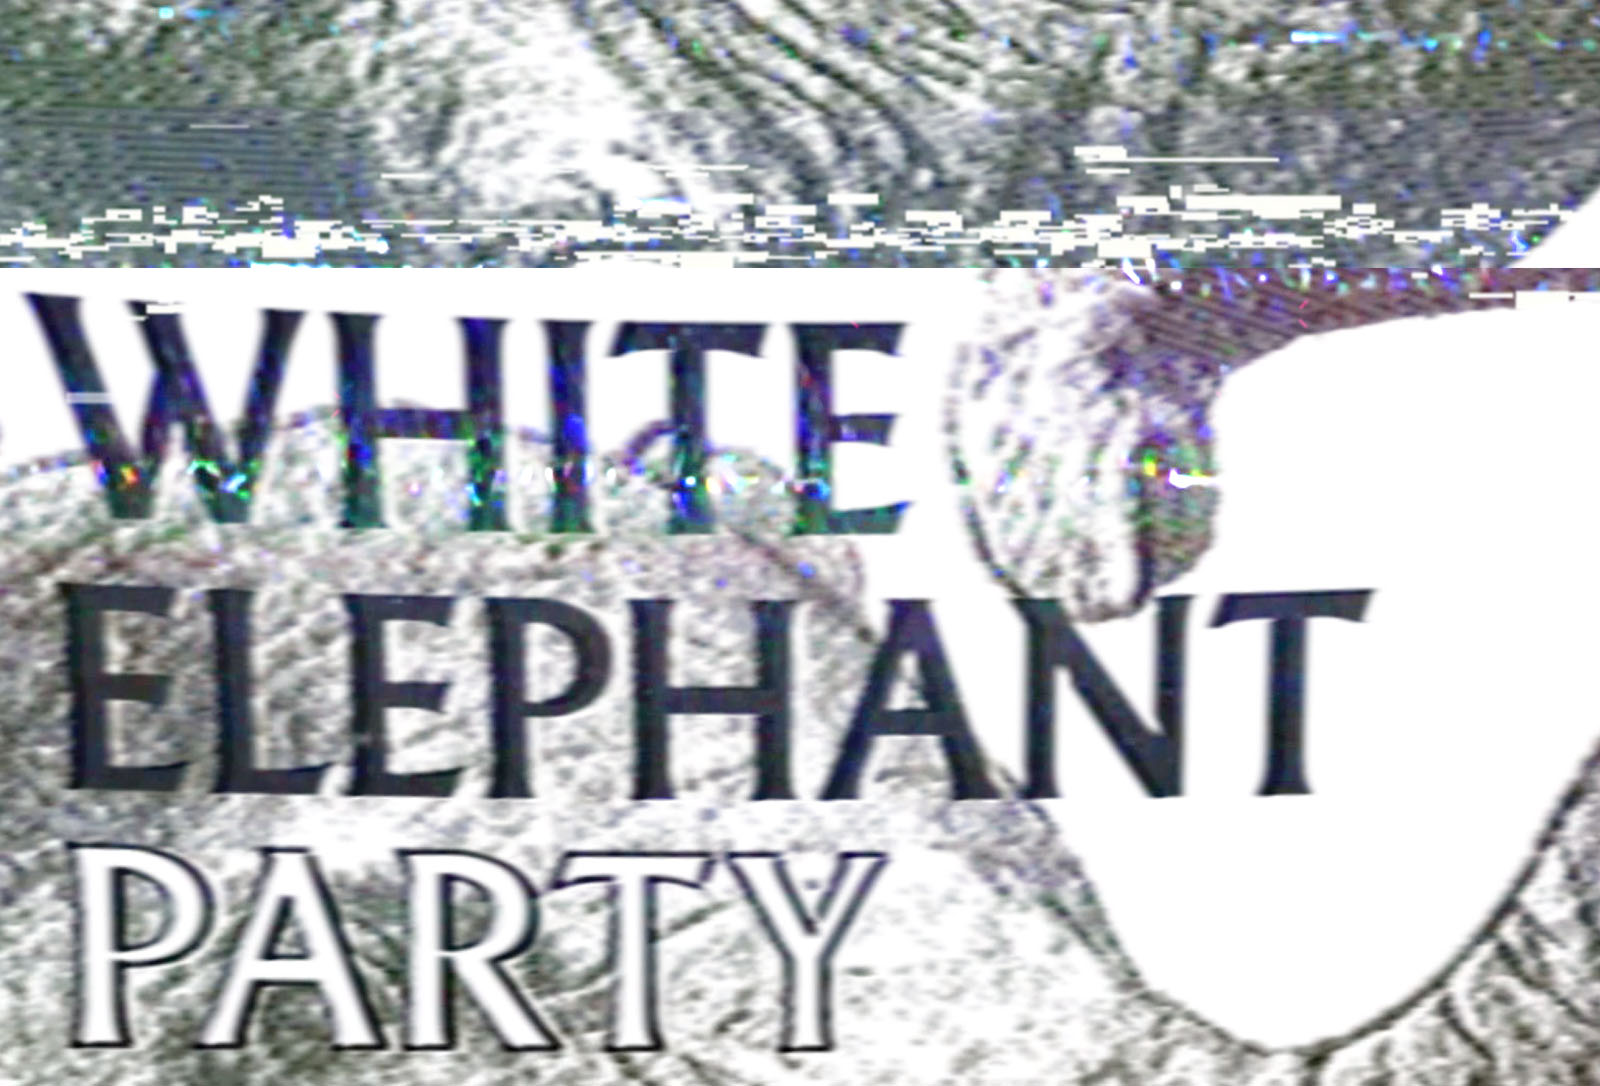 White Elephant Party announcement